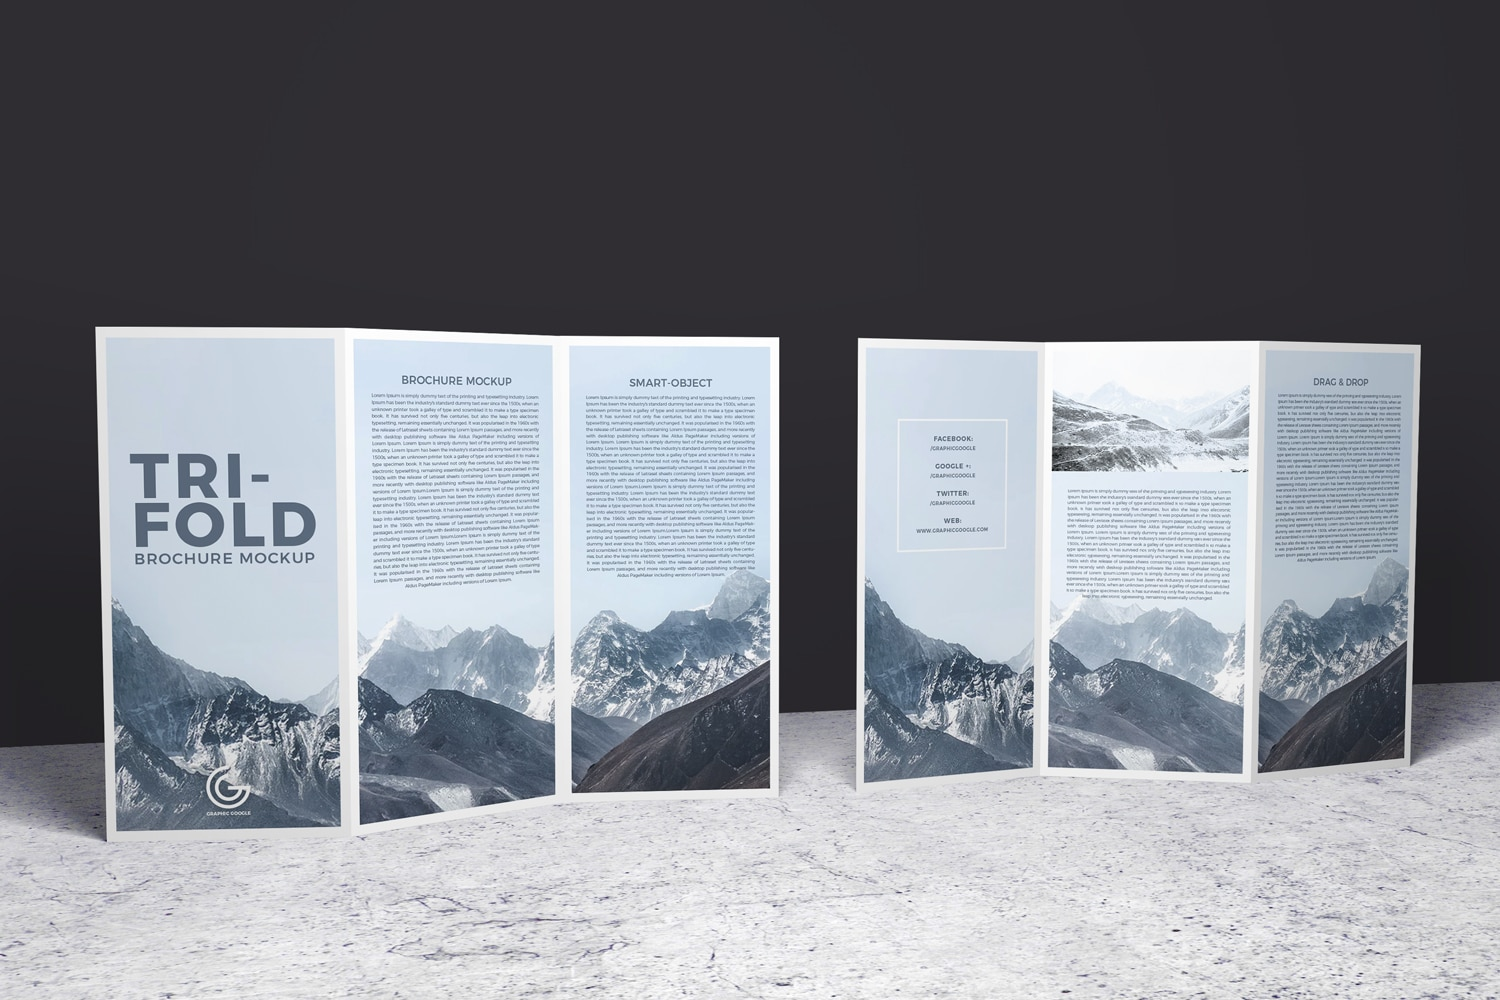 Double Sided Tri-Folded Brochure Mockup Free Download